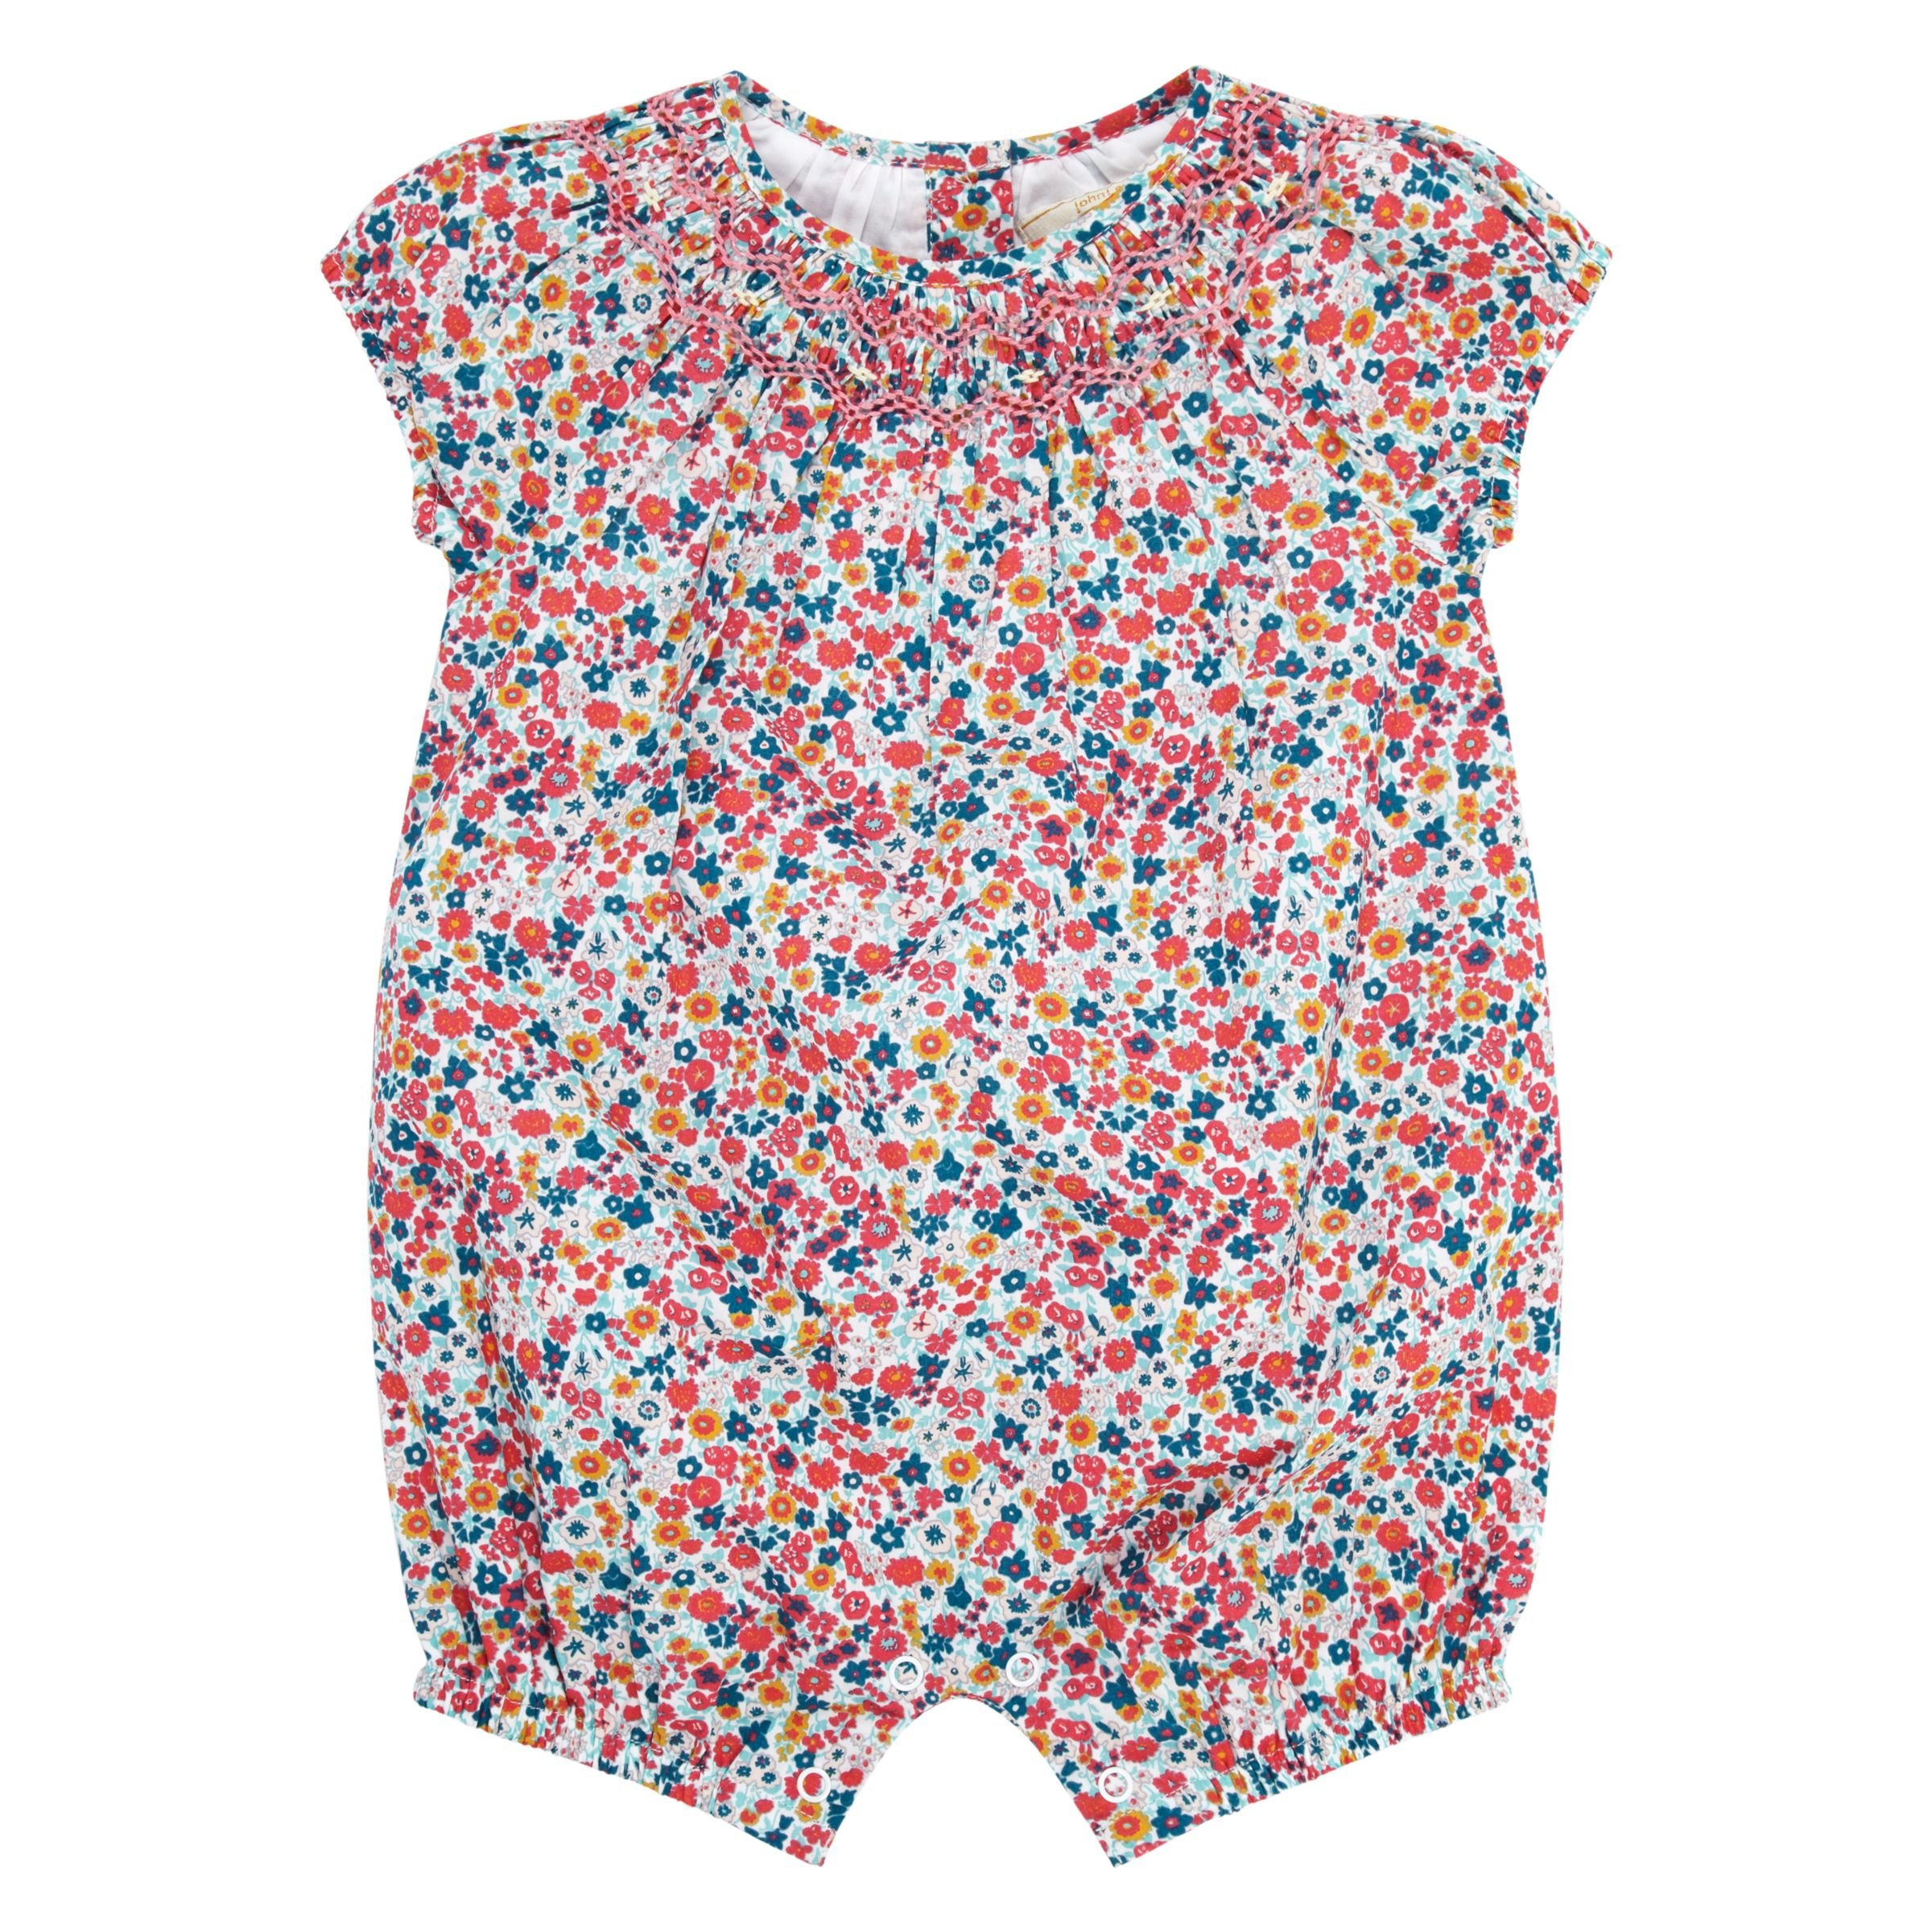 John Lewis Heirloom Collection John Lewis Heirloom Collection Baby Ditsy Romper, Pink/Multi